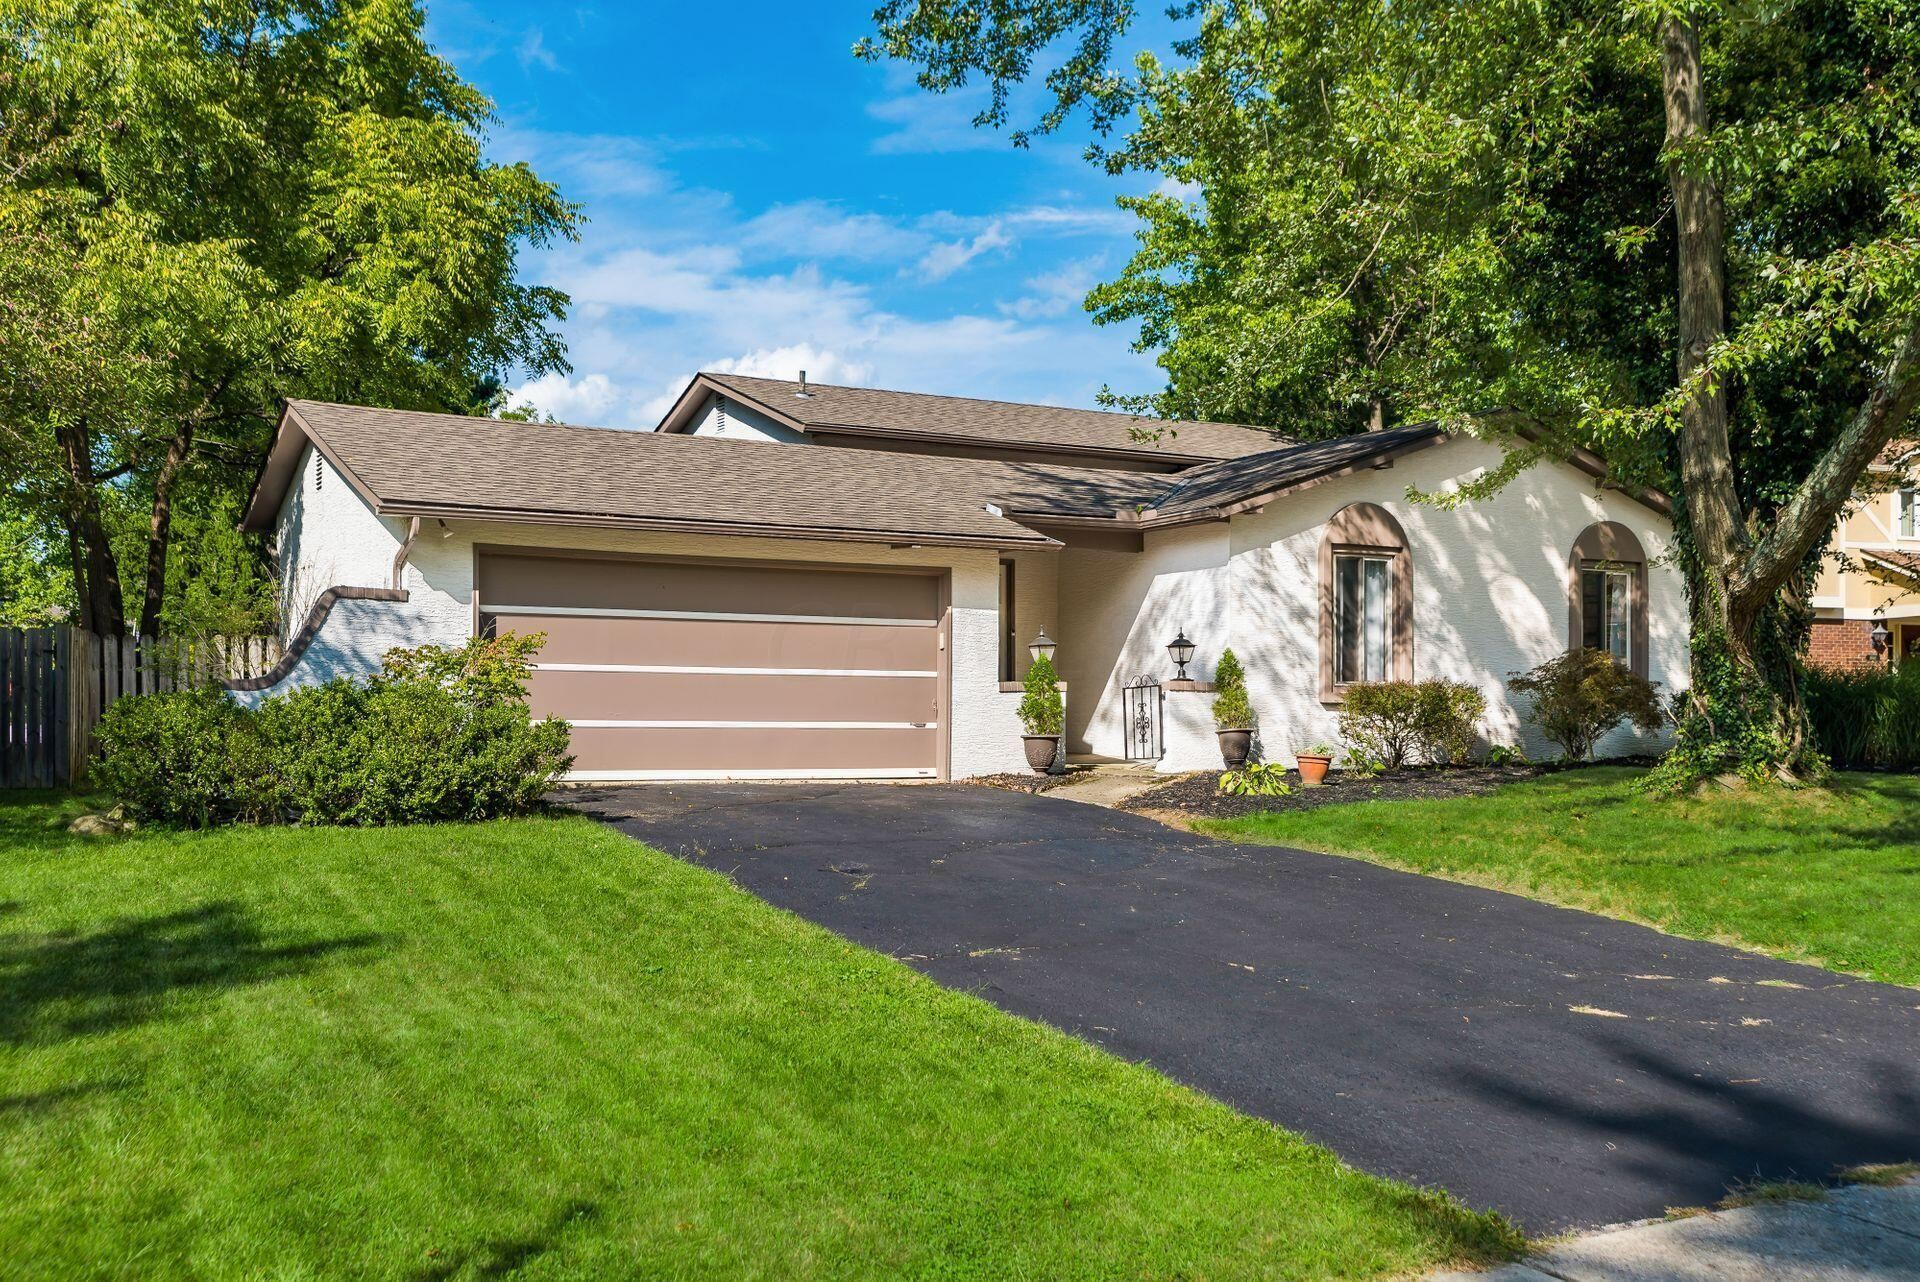 Photo of 1012 Autumn Lake Court, Westerville, OH 43081 (MLS # 221036716)